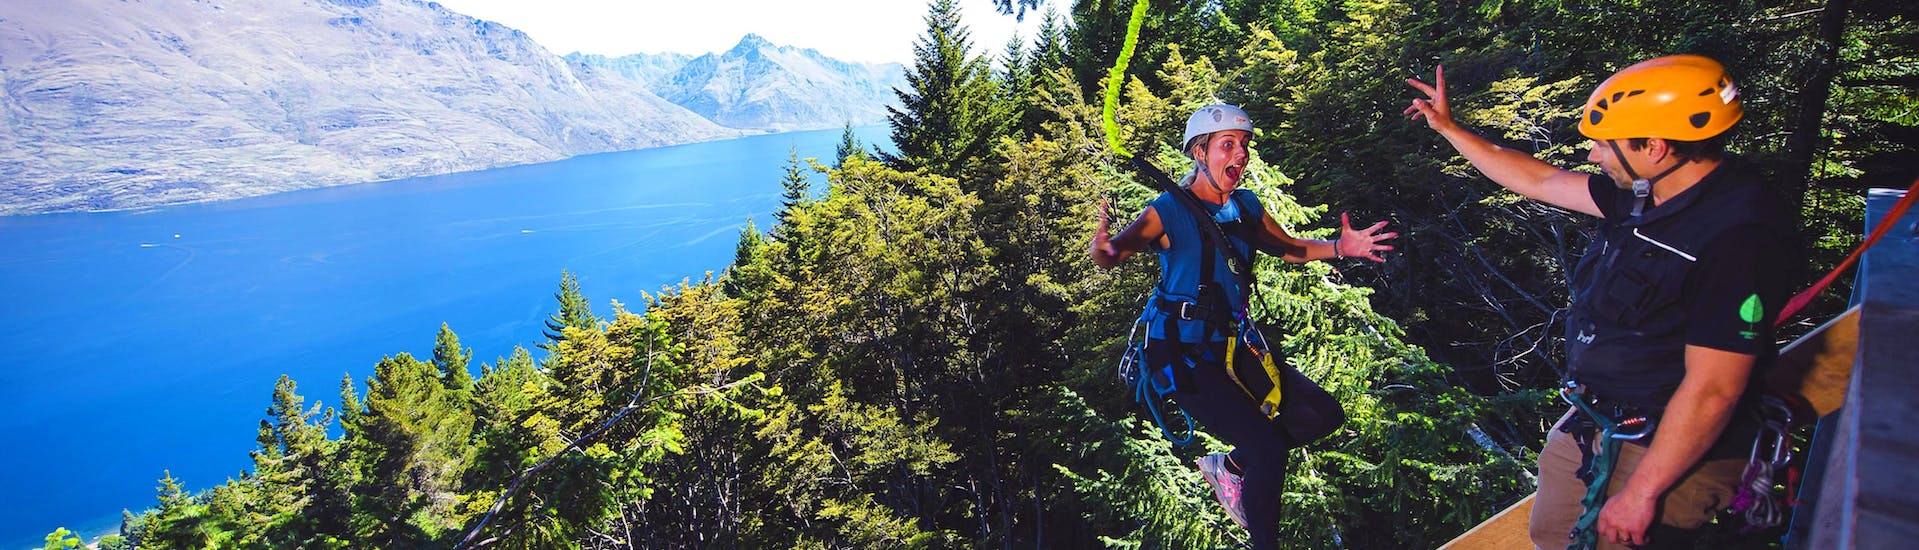 A girl looks at the difference in altitude below her, soon he will jump 21 m, which is the highlight of the Zipline route in Queenstown - Kereru: 2 Ziplines and 21 m Drop of Ziptrek Ecotours Queenstown.